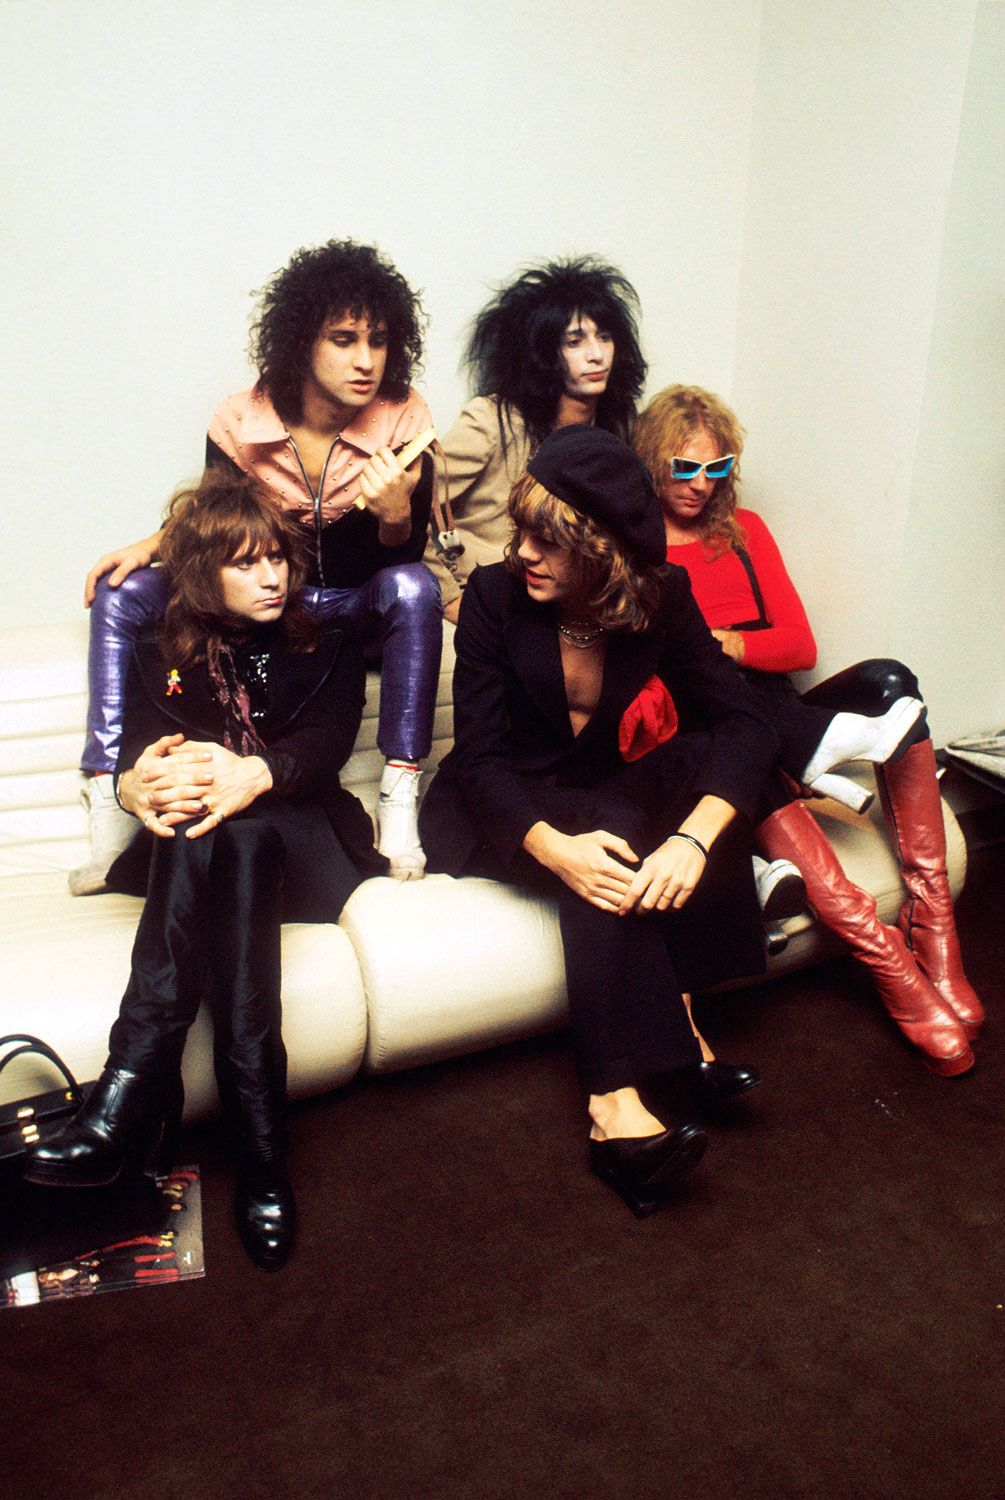 The New York Dolls S Sylvain Sylvain On The Band S Groundbreaking Style And His Clothing Line